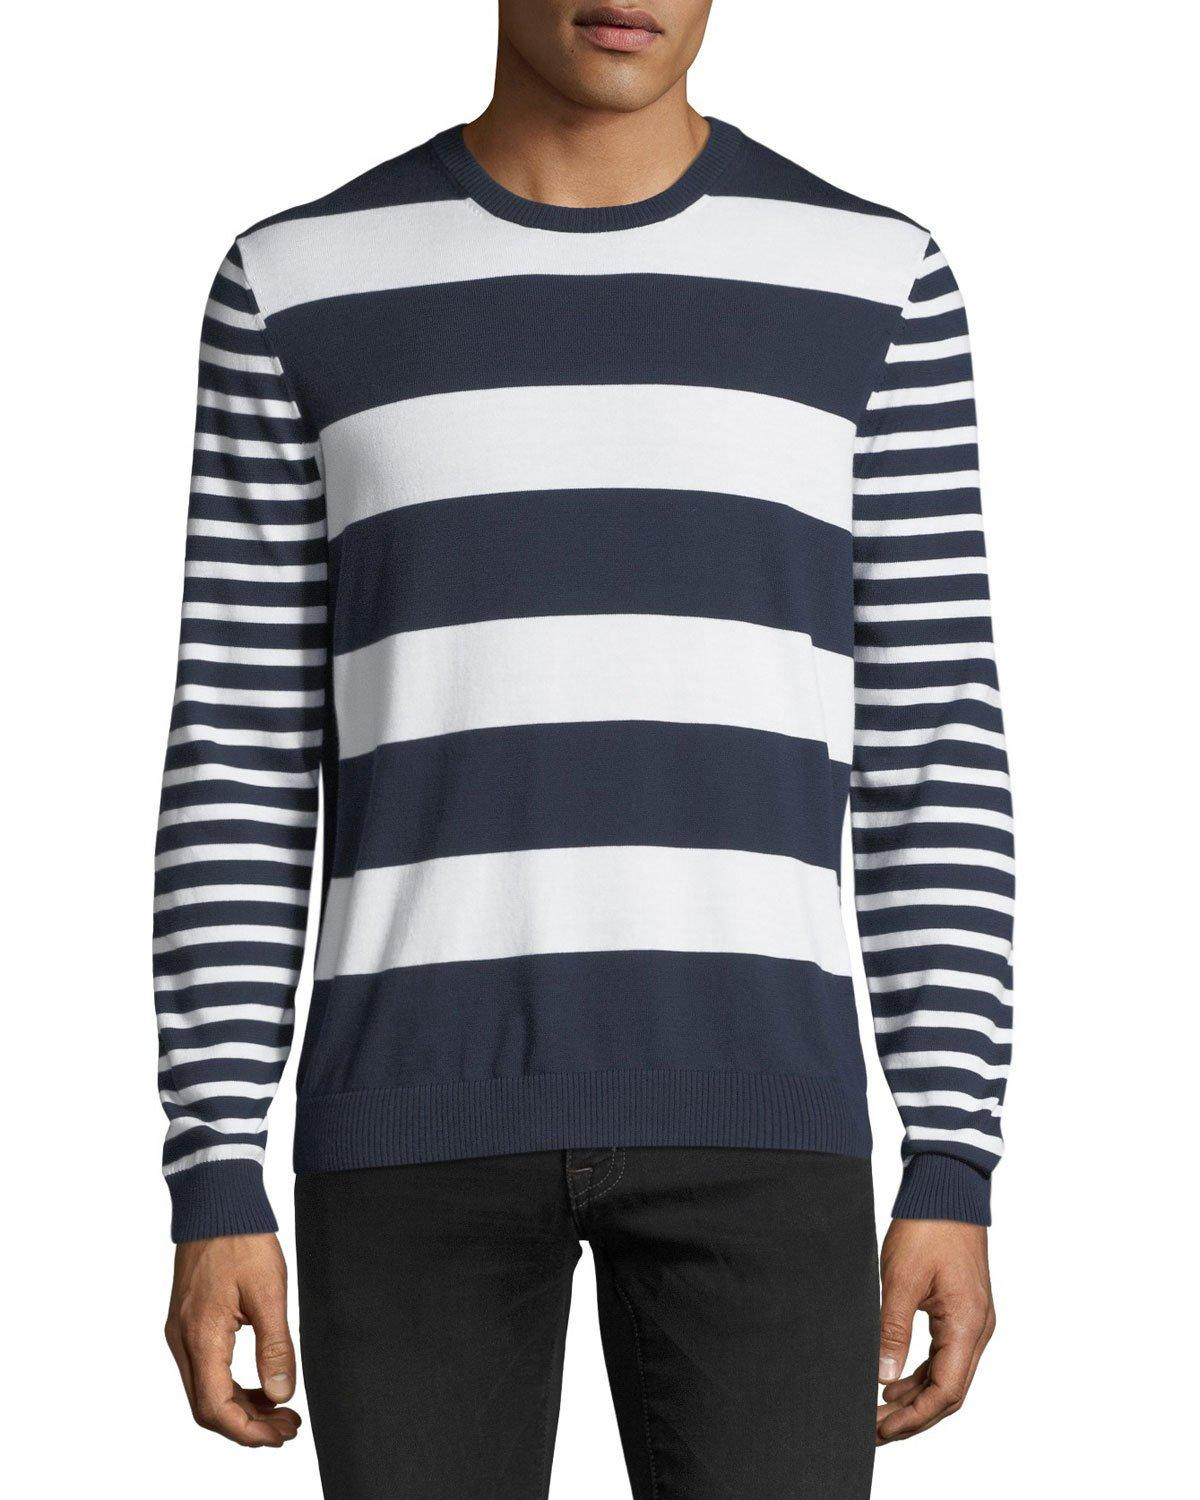 Michael Kors Mixed Striped Cotton Sweater In Midnight